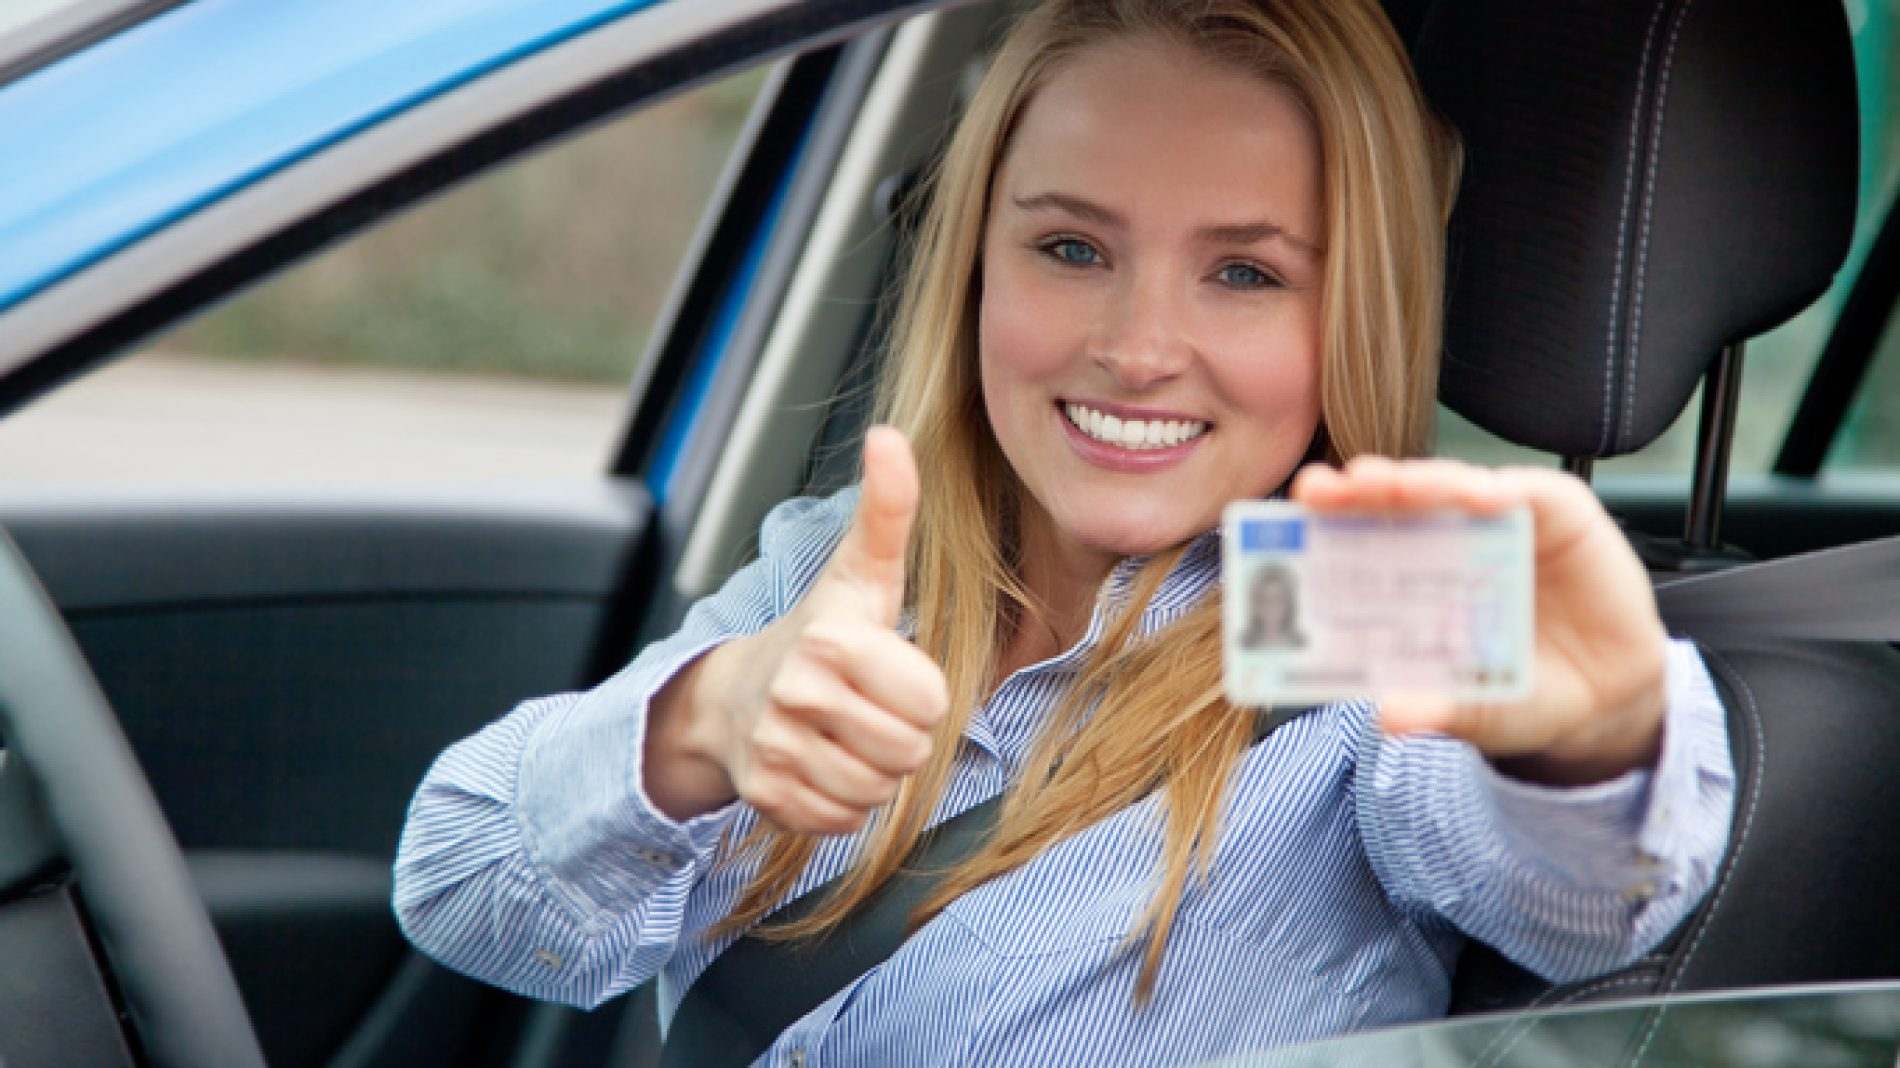 Women holding driving licence in car